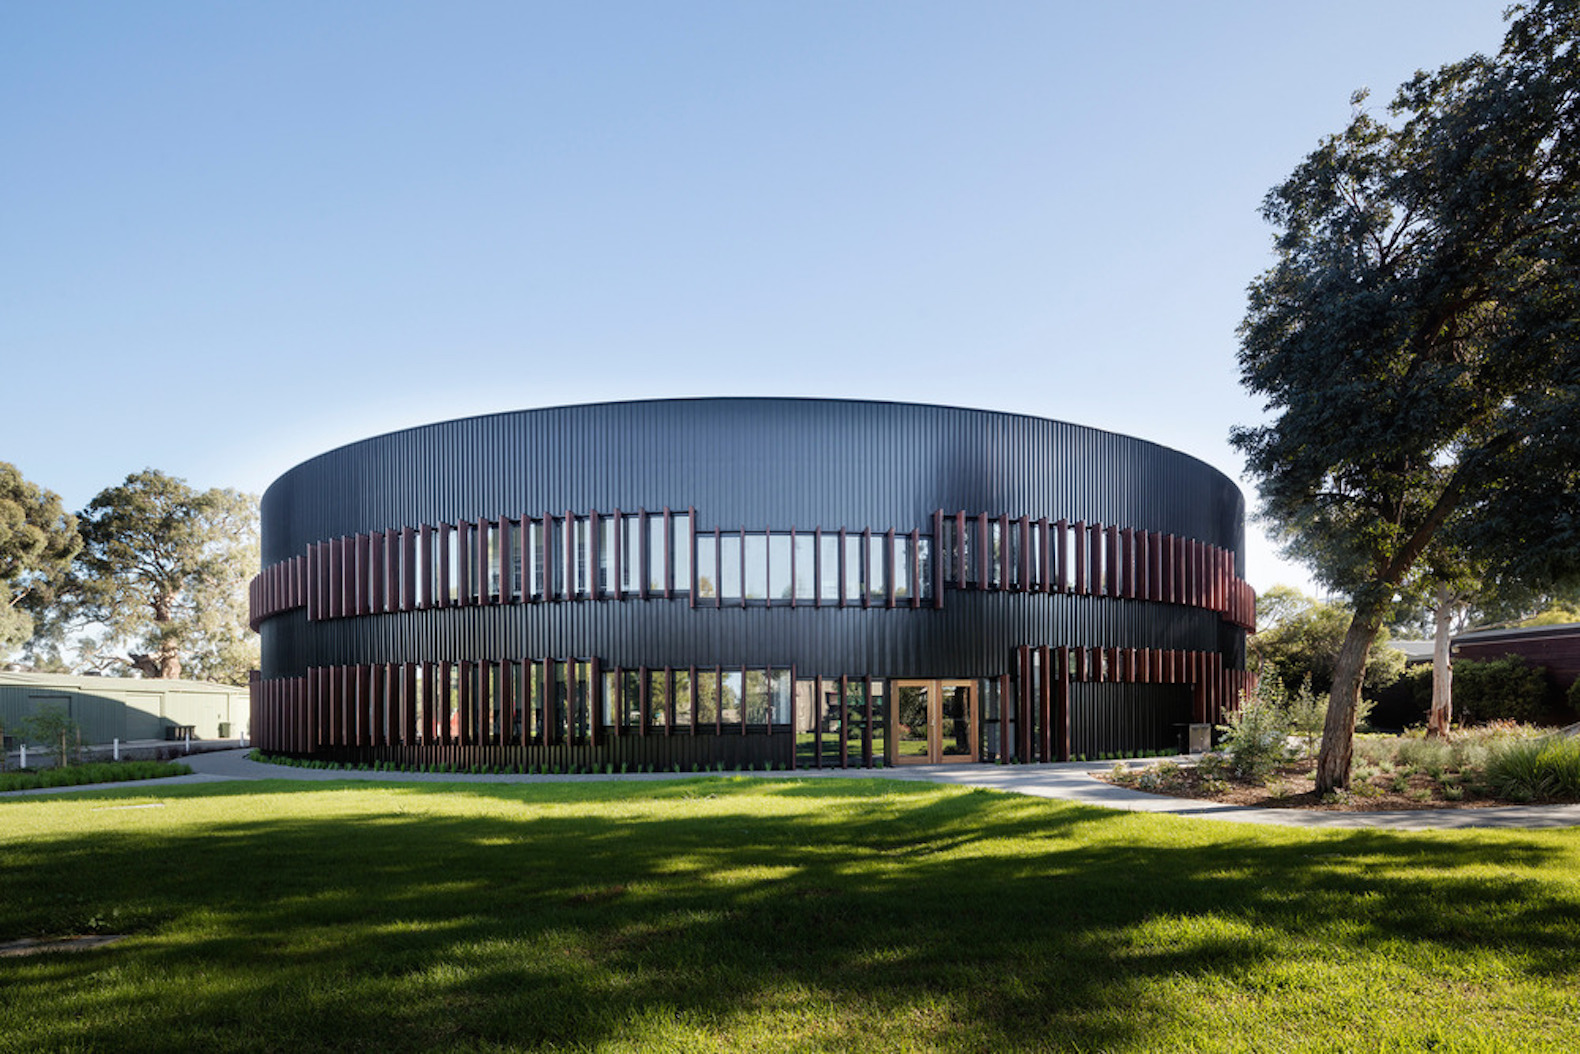 Circular school hides a kaleidoscope of color and geometry